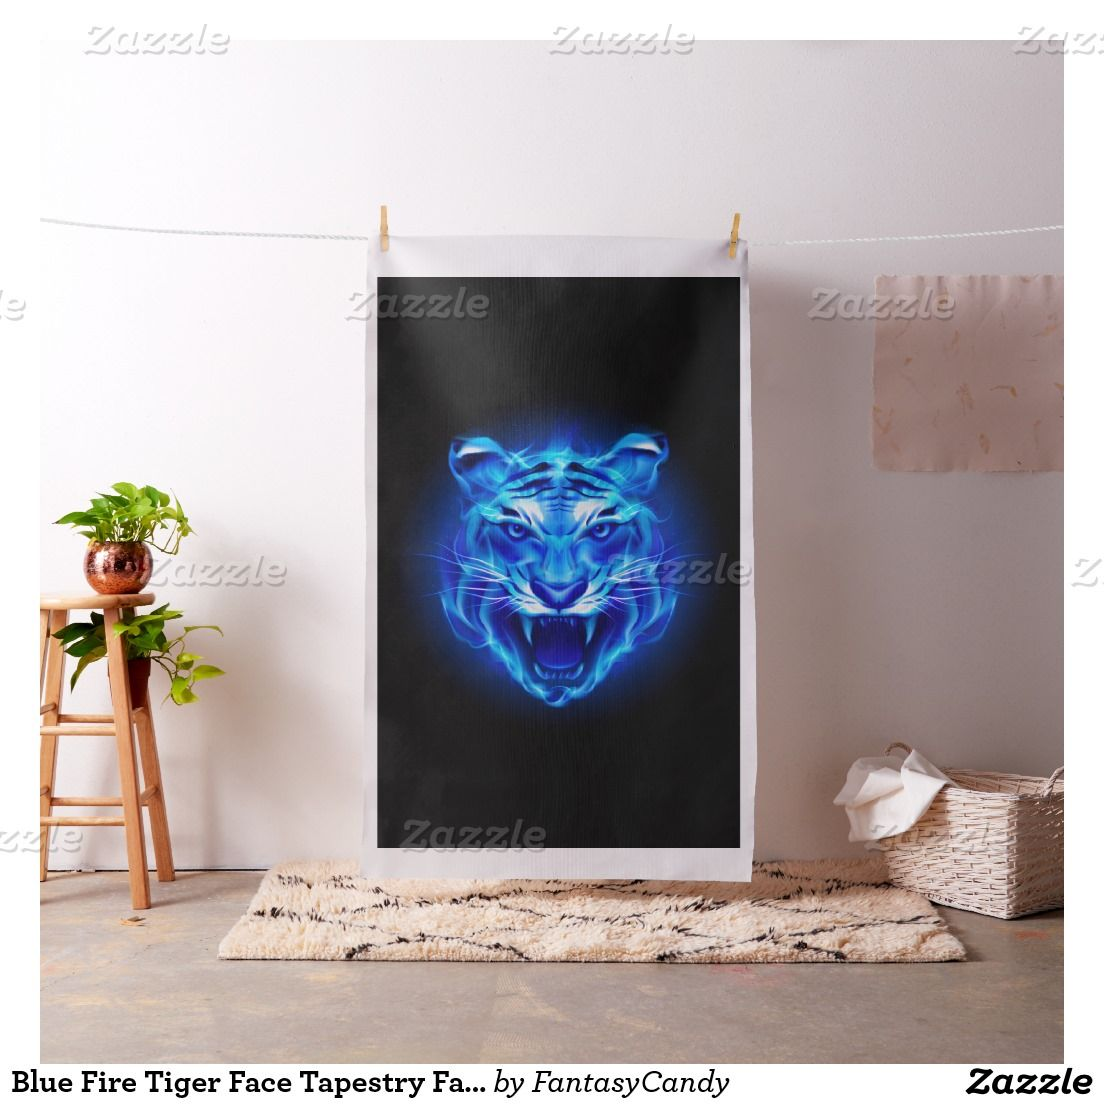 Blue Fire Tiger Face Tapestry Fabric